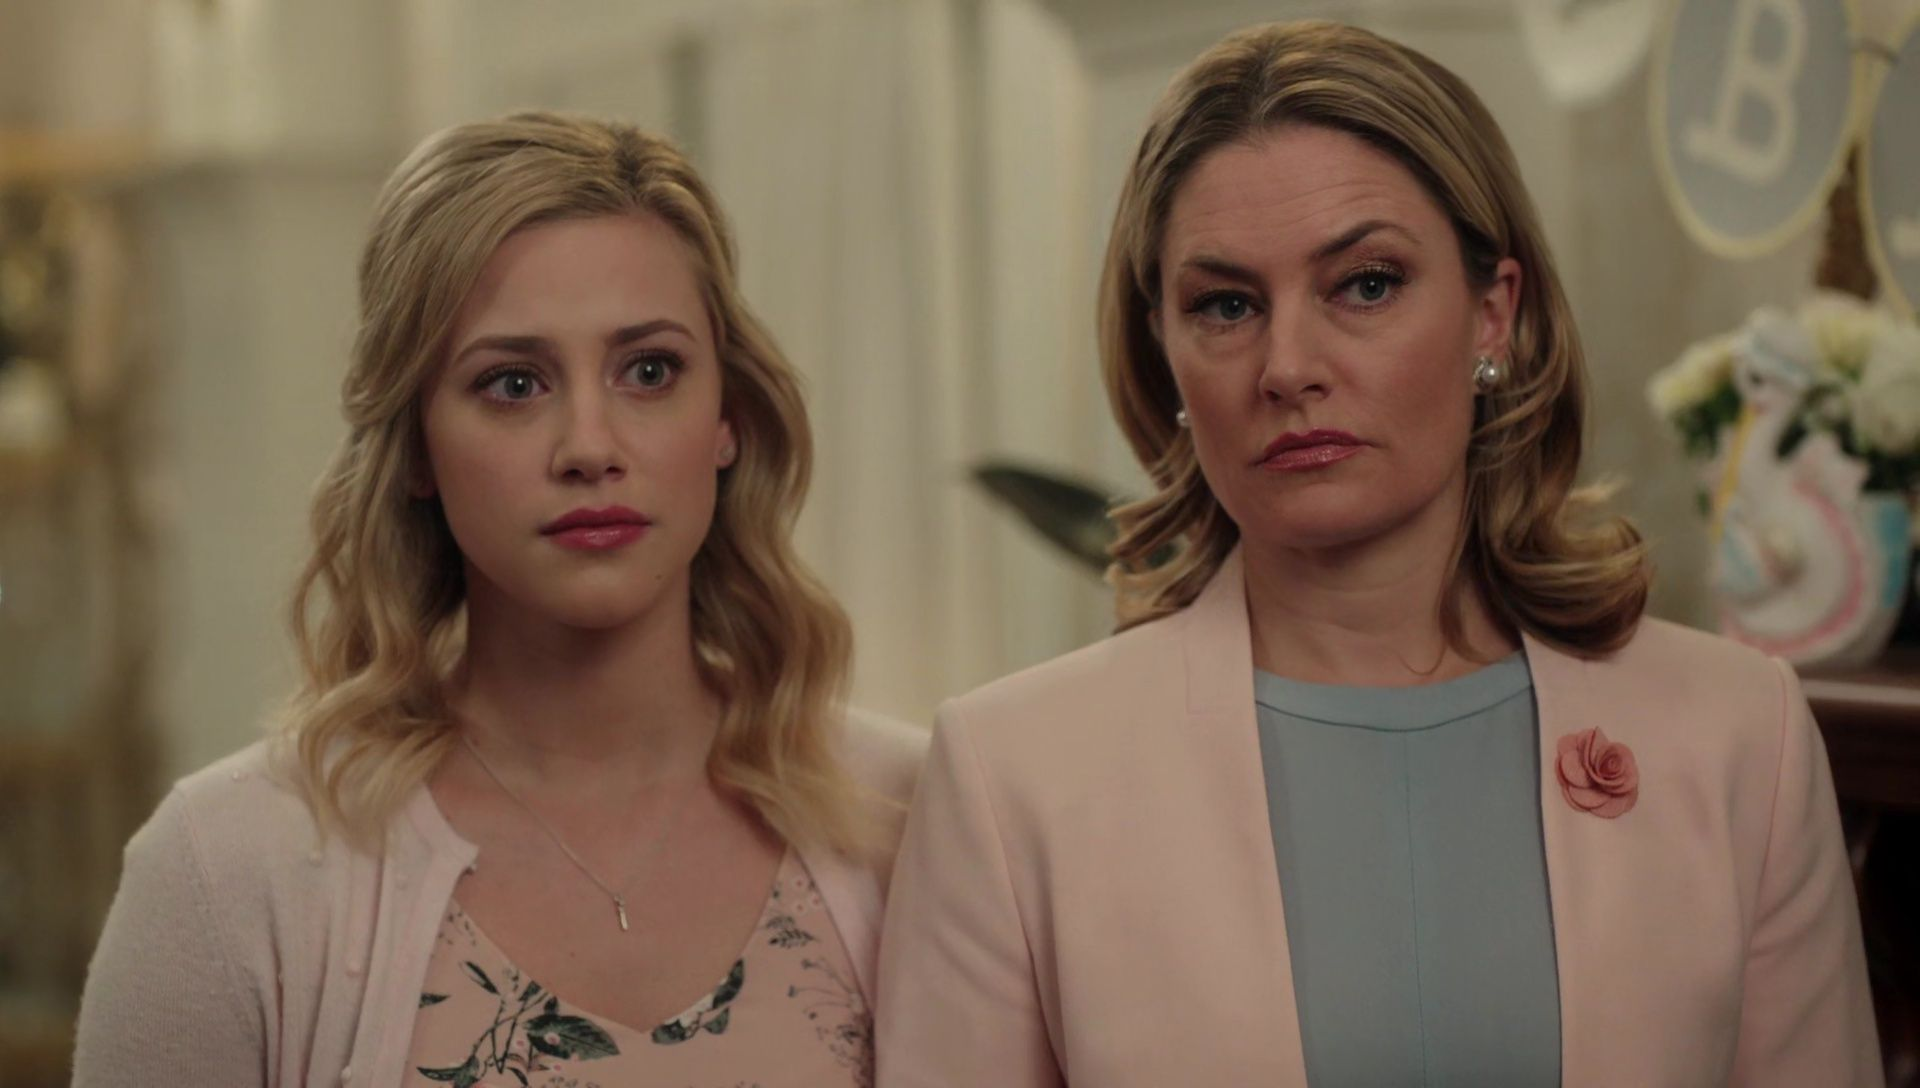 The Riverdale Teenagers Will Play Younger Versions of Their Parents in Season 3 Flashback Episode